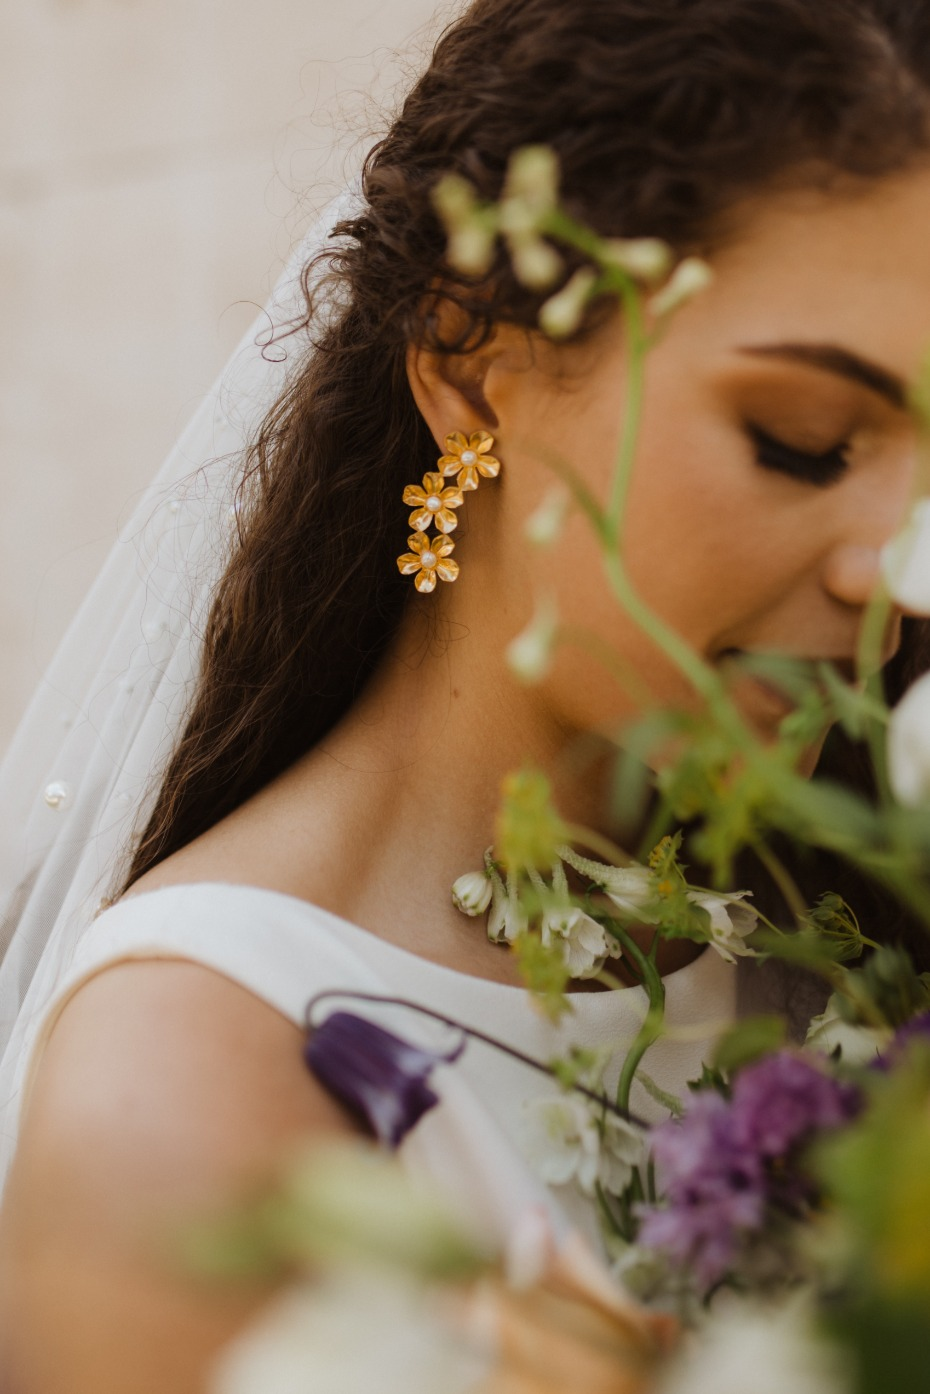 Custom Jewelry Is Definitely Something You Never Knew You Needed for Your Wedding Day